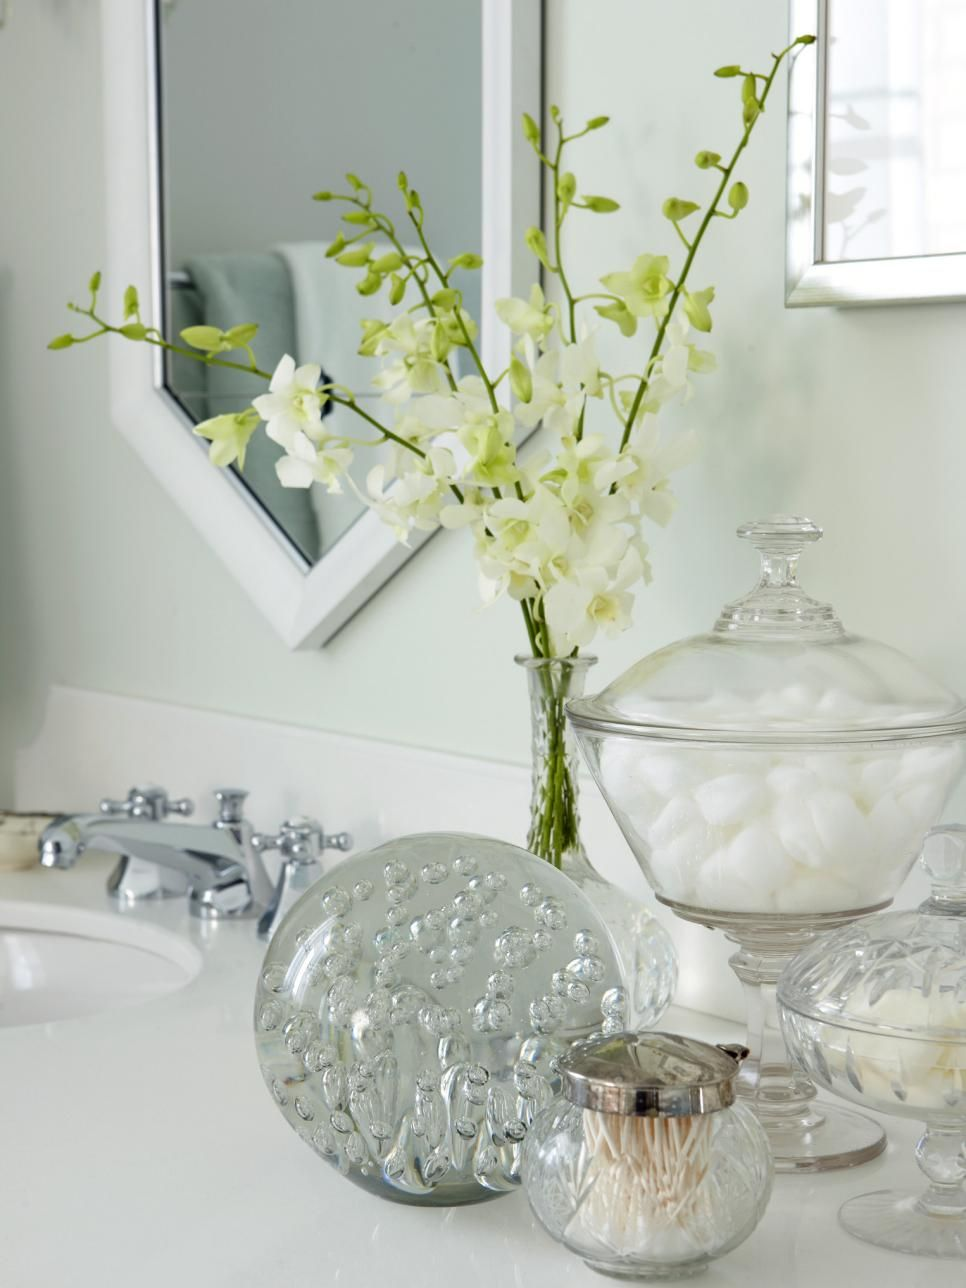 Preparing Your Guest Bathroom for Weekend Visitors | Good Ideas ...